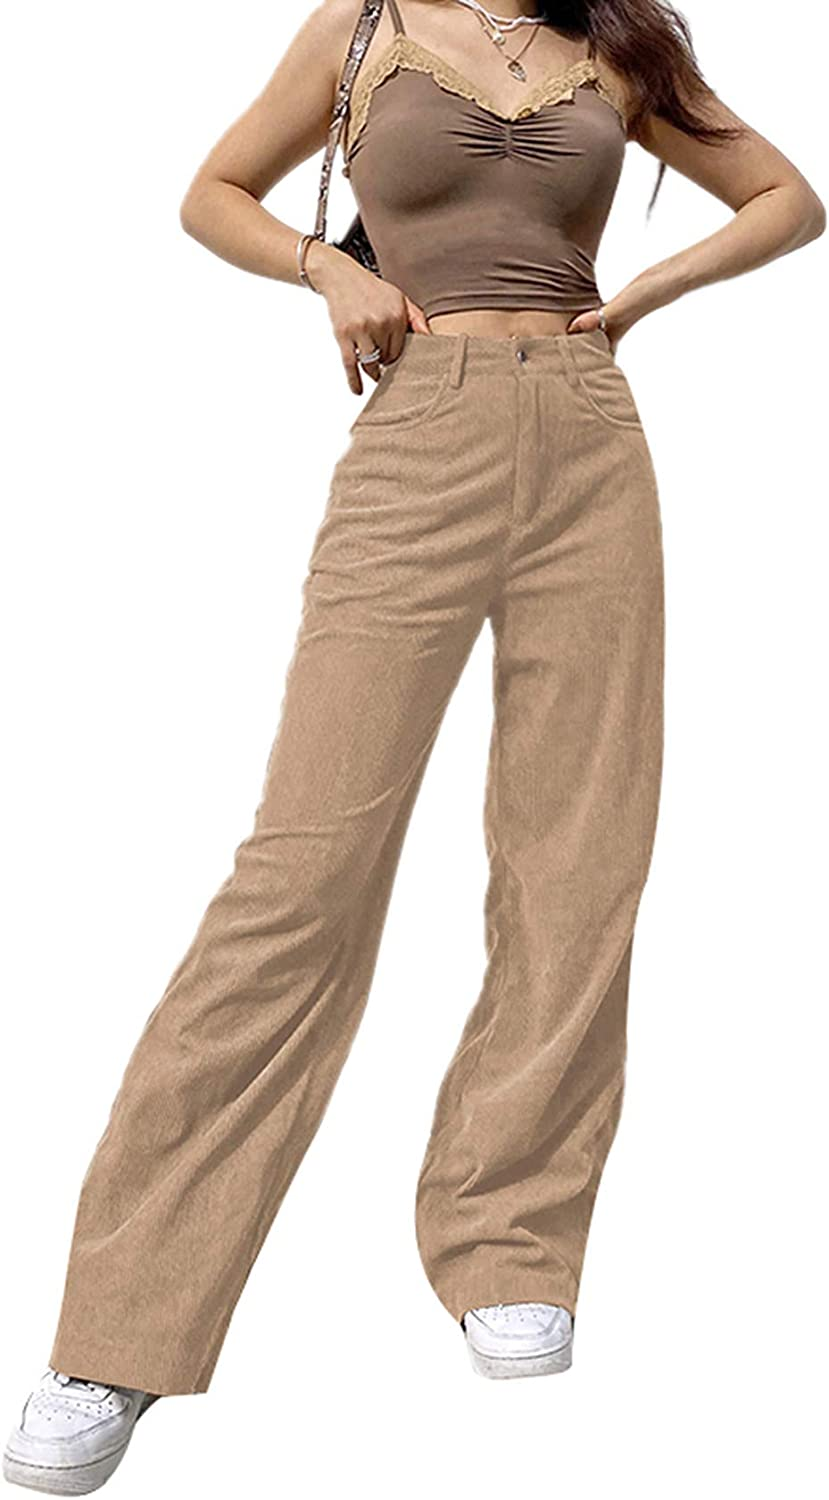 Women's High Waist Corduroy Solid/Patchwork Pants Vintage Y2K Straight Leg Baggy Trousers Casual Hipster Streetwear